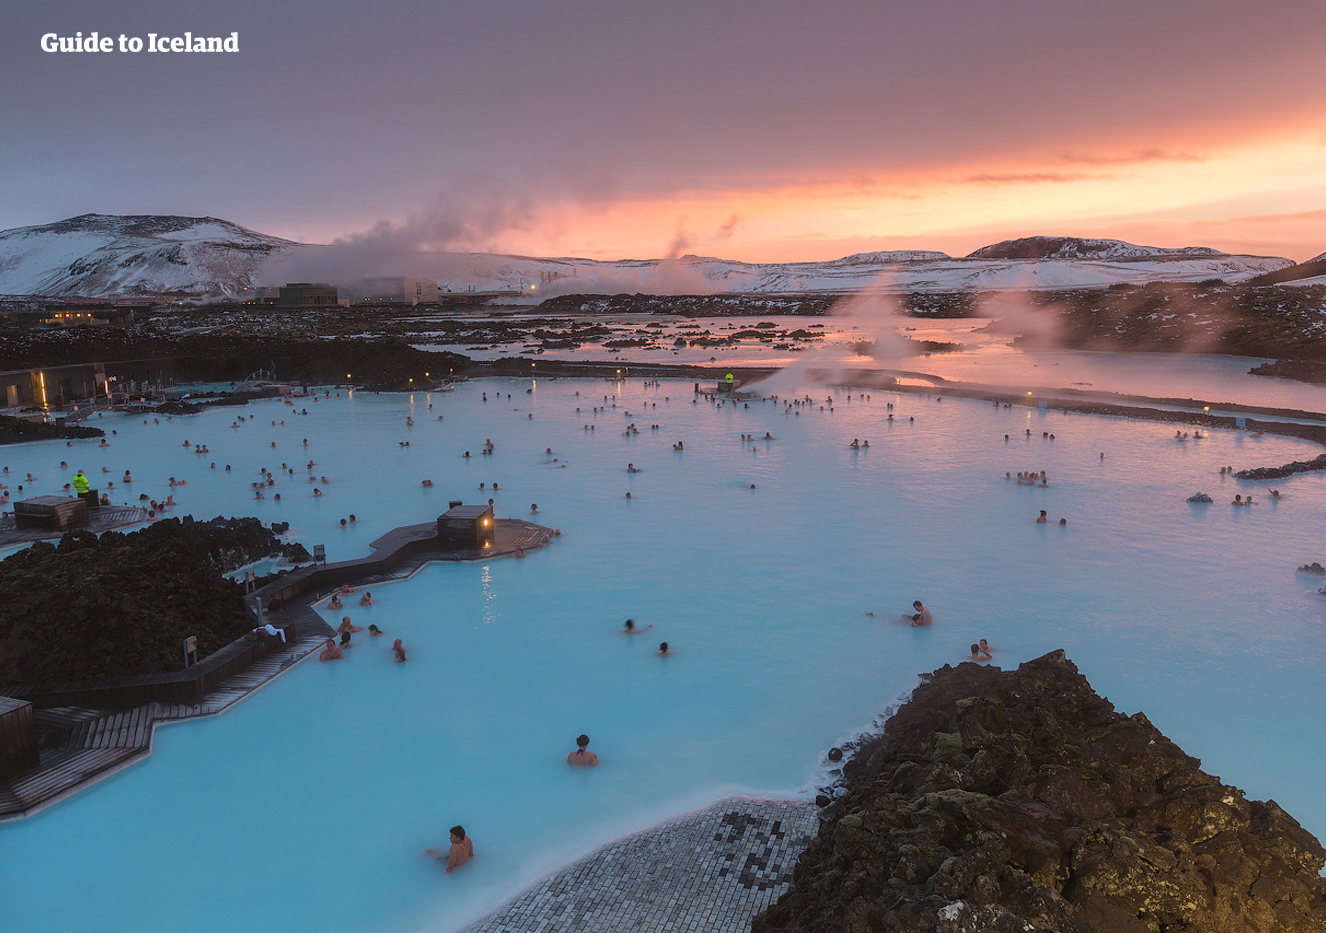 10 Day Summer Self Drive | Clockwise Circle of Iceland - day 1